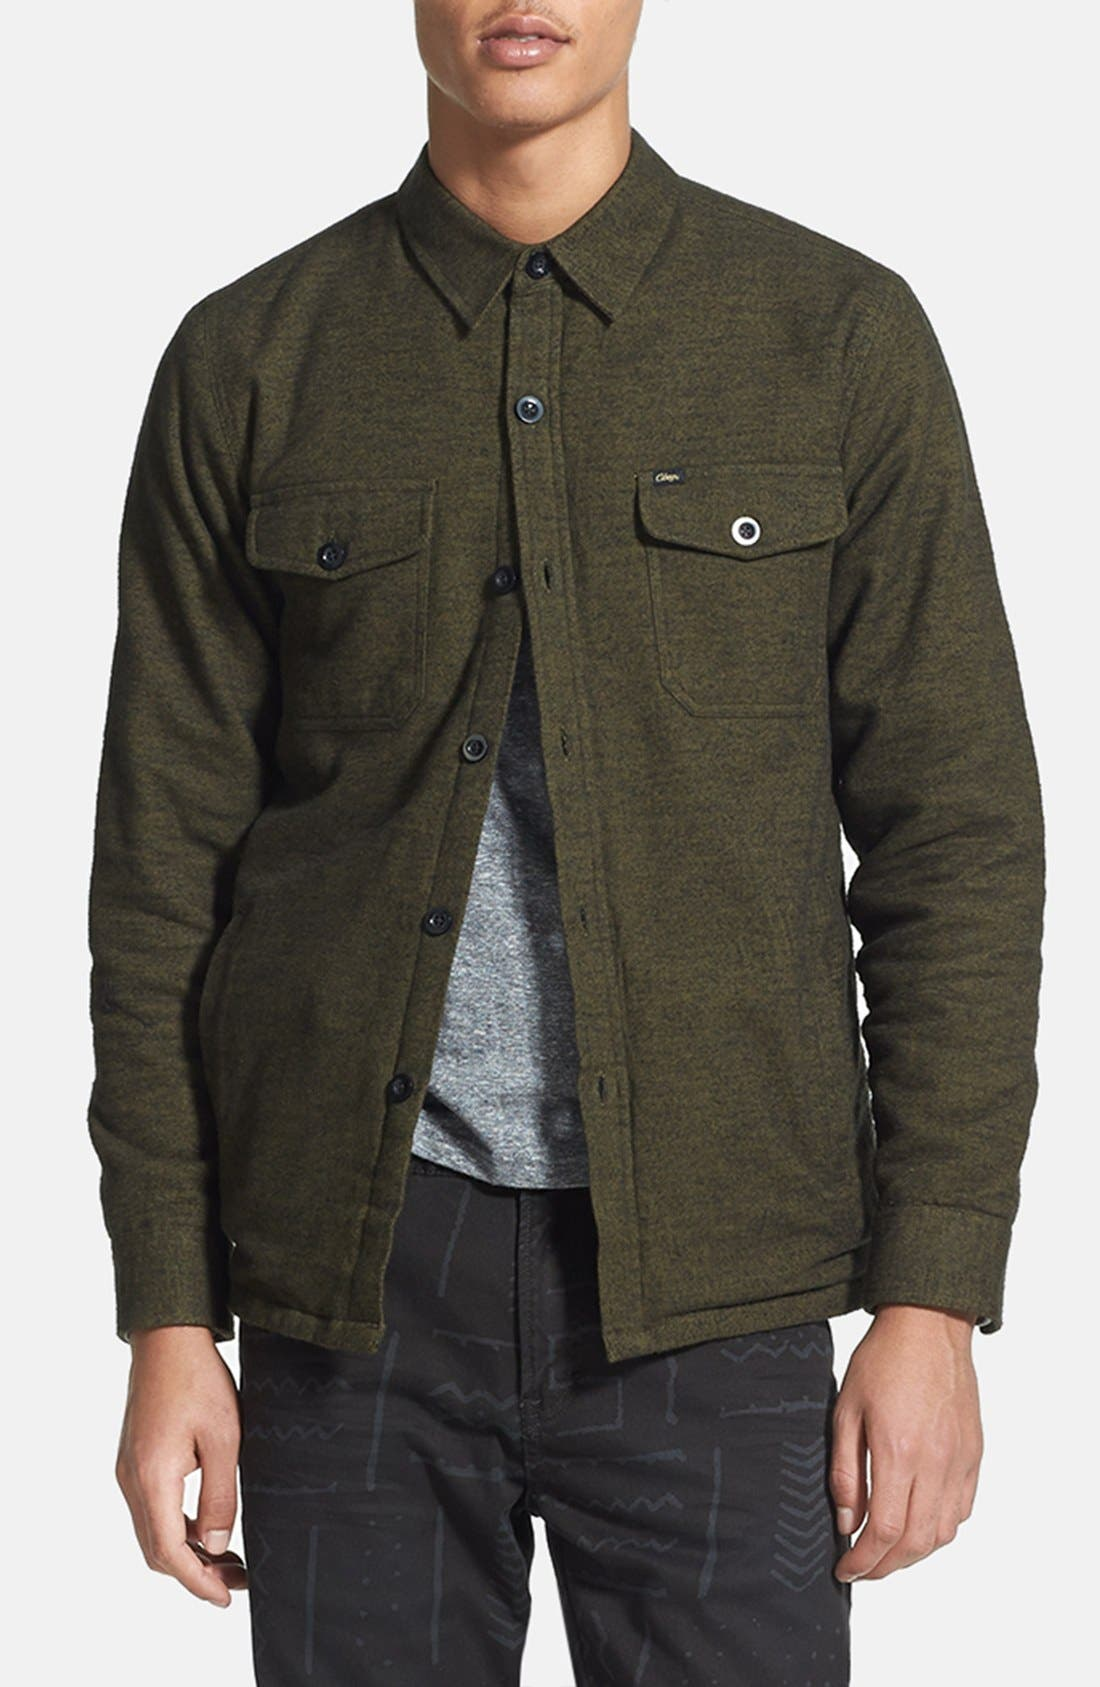 Alternate Image 1 Selected - Obey 'Field Master' Lightweight Cotton Flannel Jacket